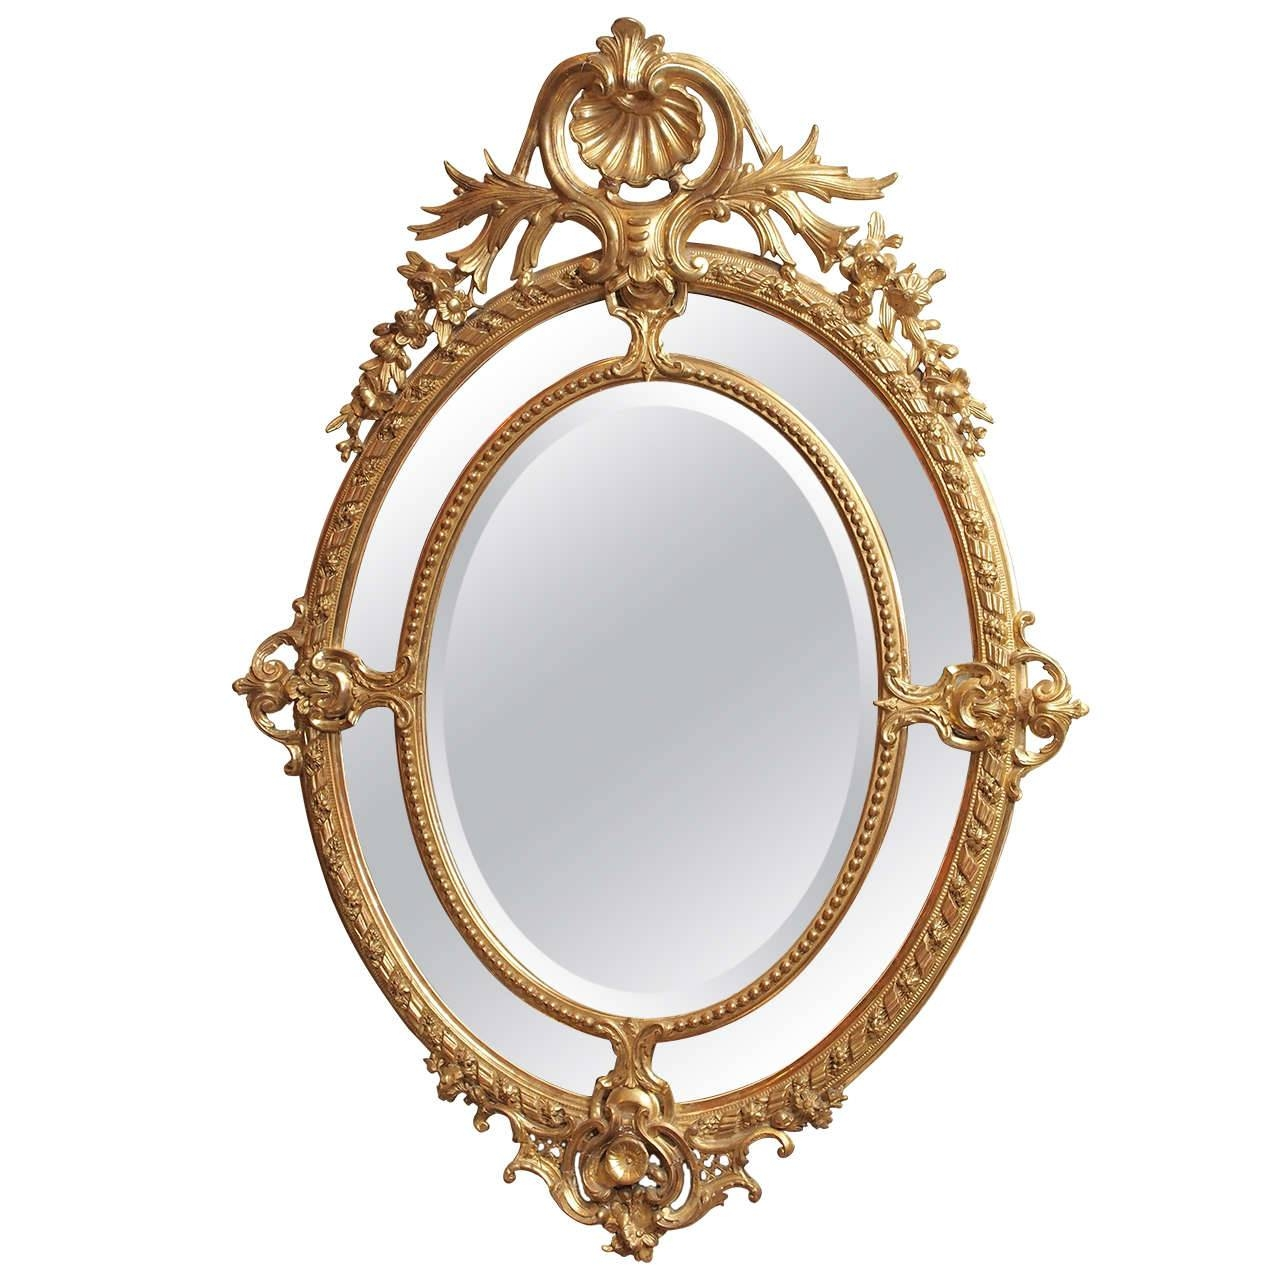 Gold Oval Mirror Vintage 148 Nice Decorating With Ornate Antique intended for Small Gold Mirrors (Image 13 of 25)